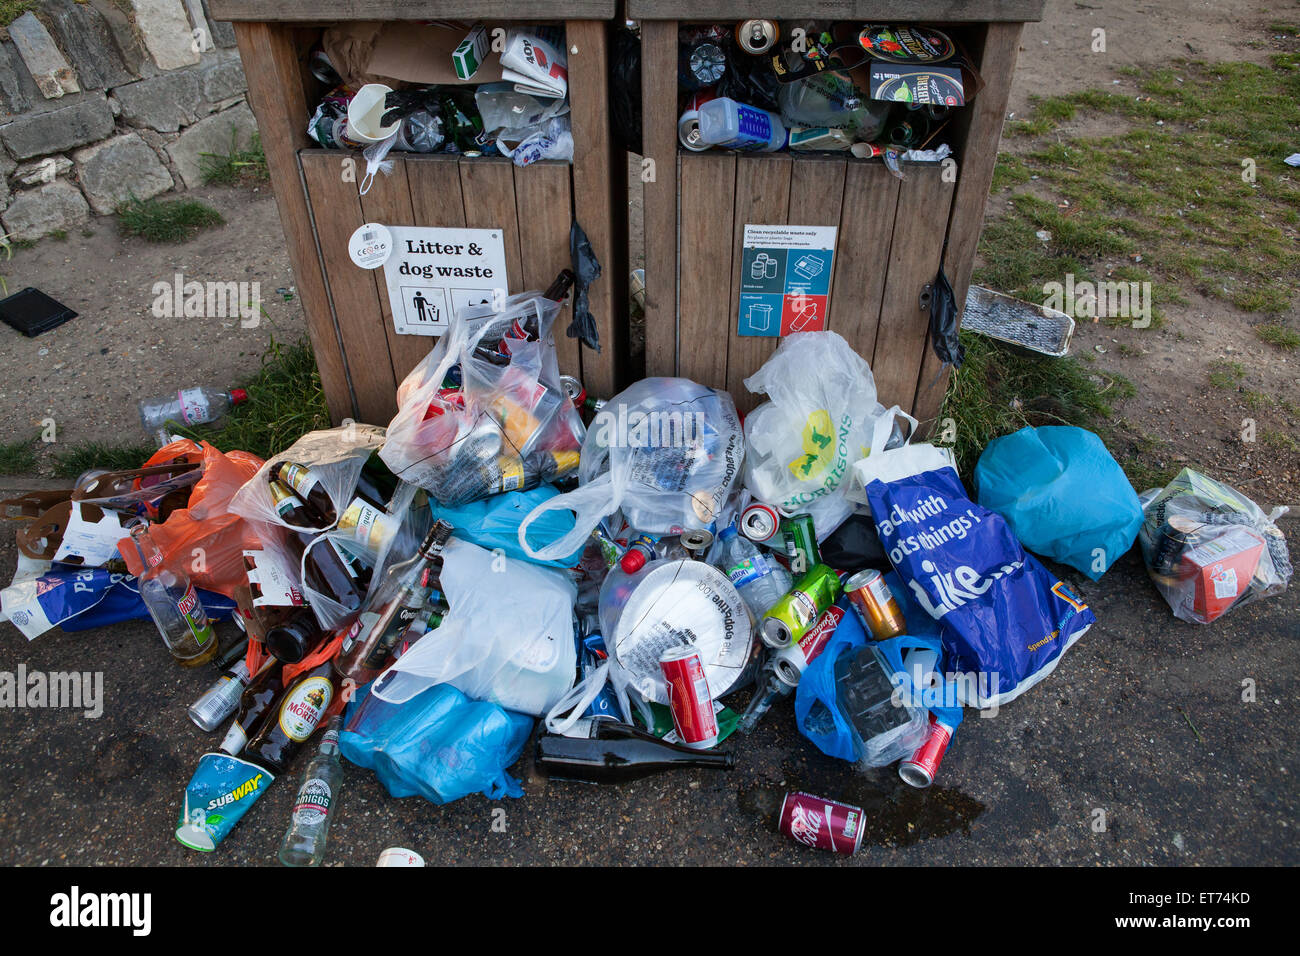 A litter bin overflowing with rubbish - Stock Image